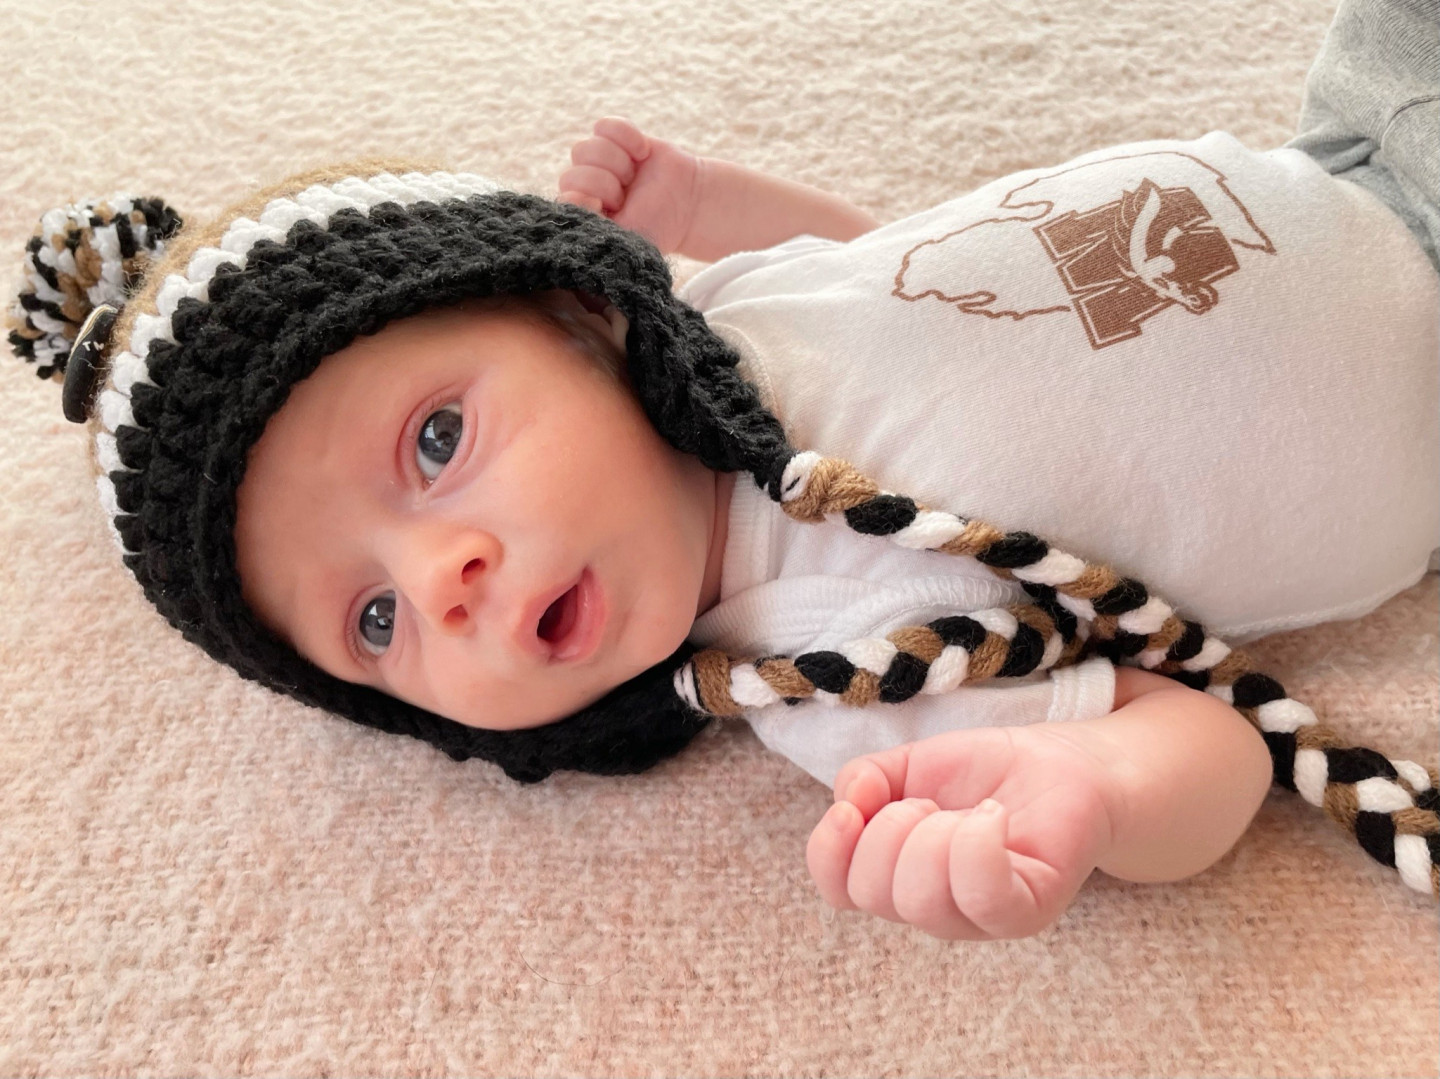 A baby wearing a winter hat.